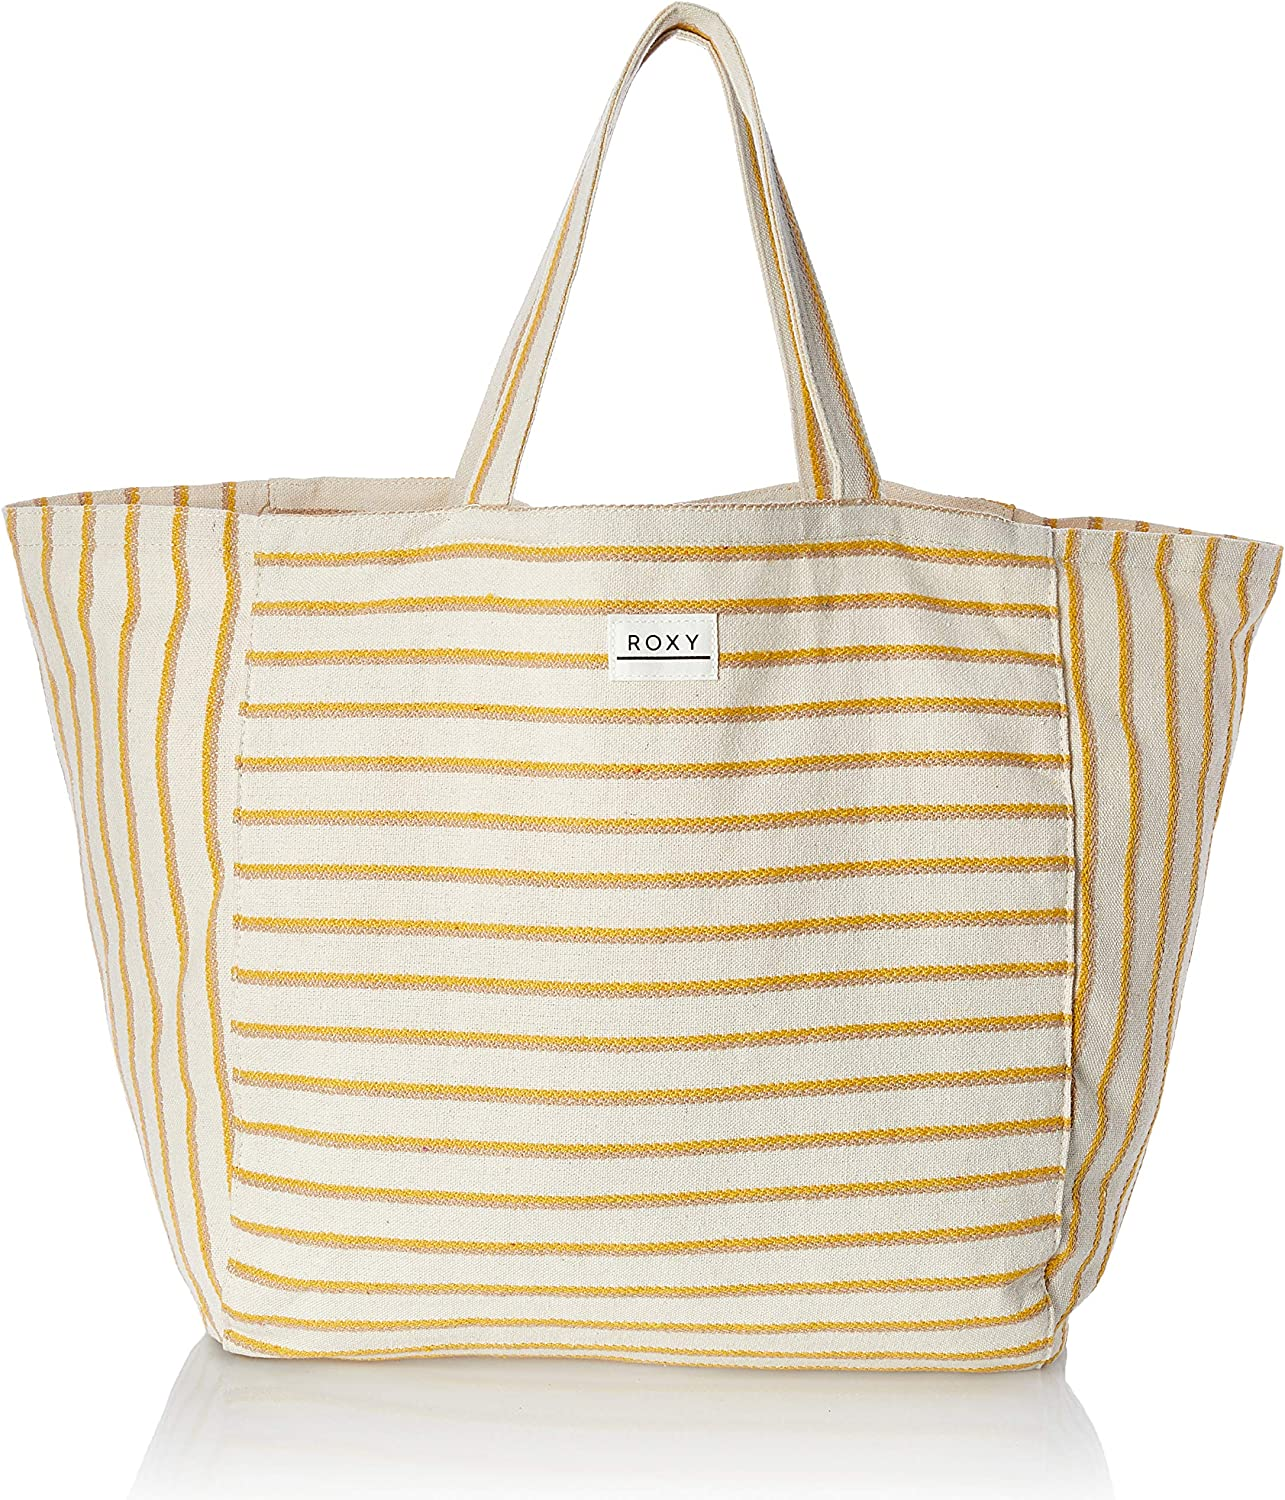 Roxy Time is Now Large Hemp Canvas Tote Bag